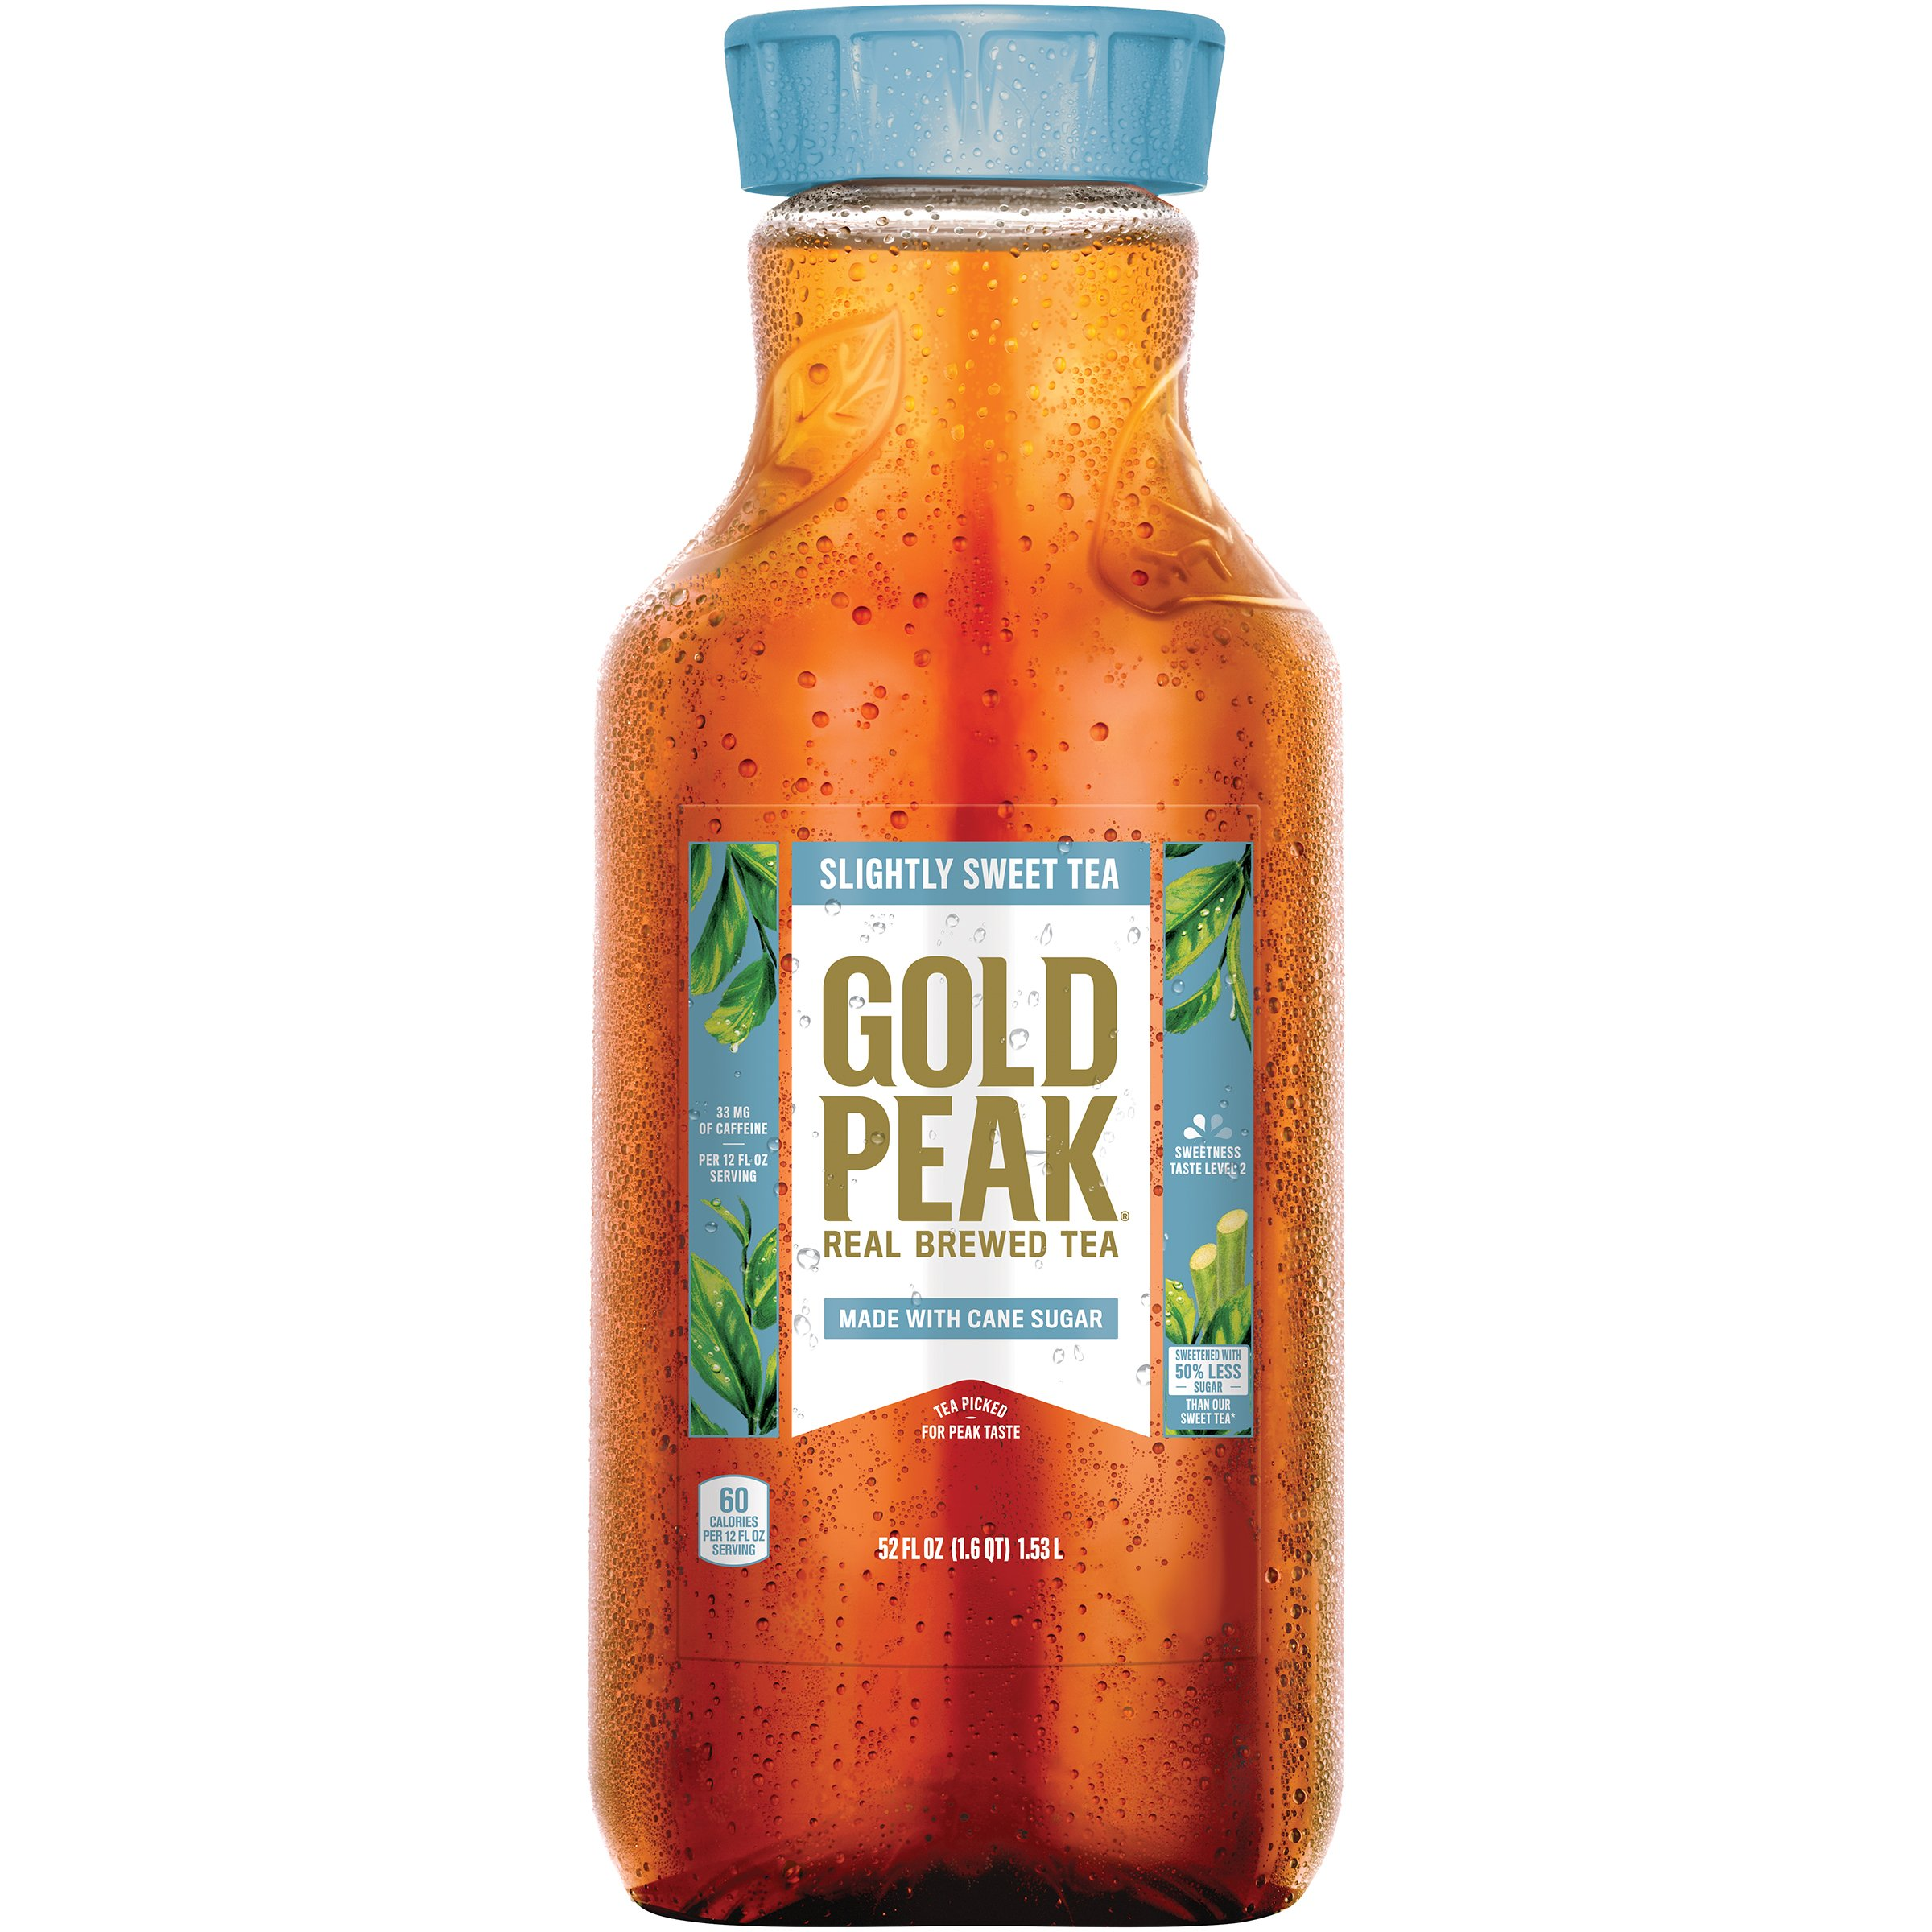 Gold Peak Slightly Sweet Tea Shop Tea At H E B